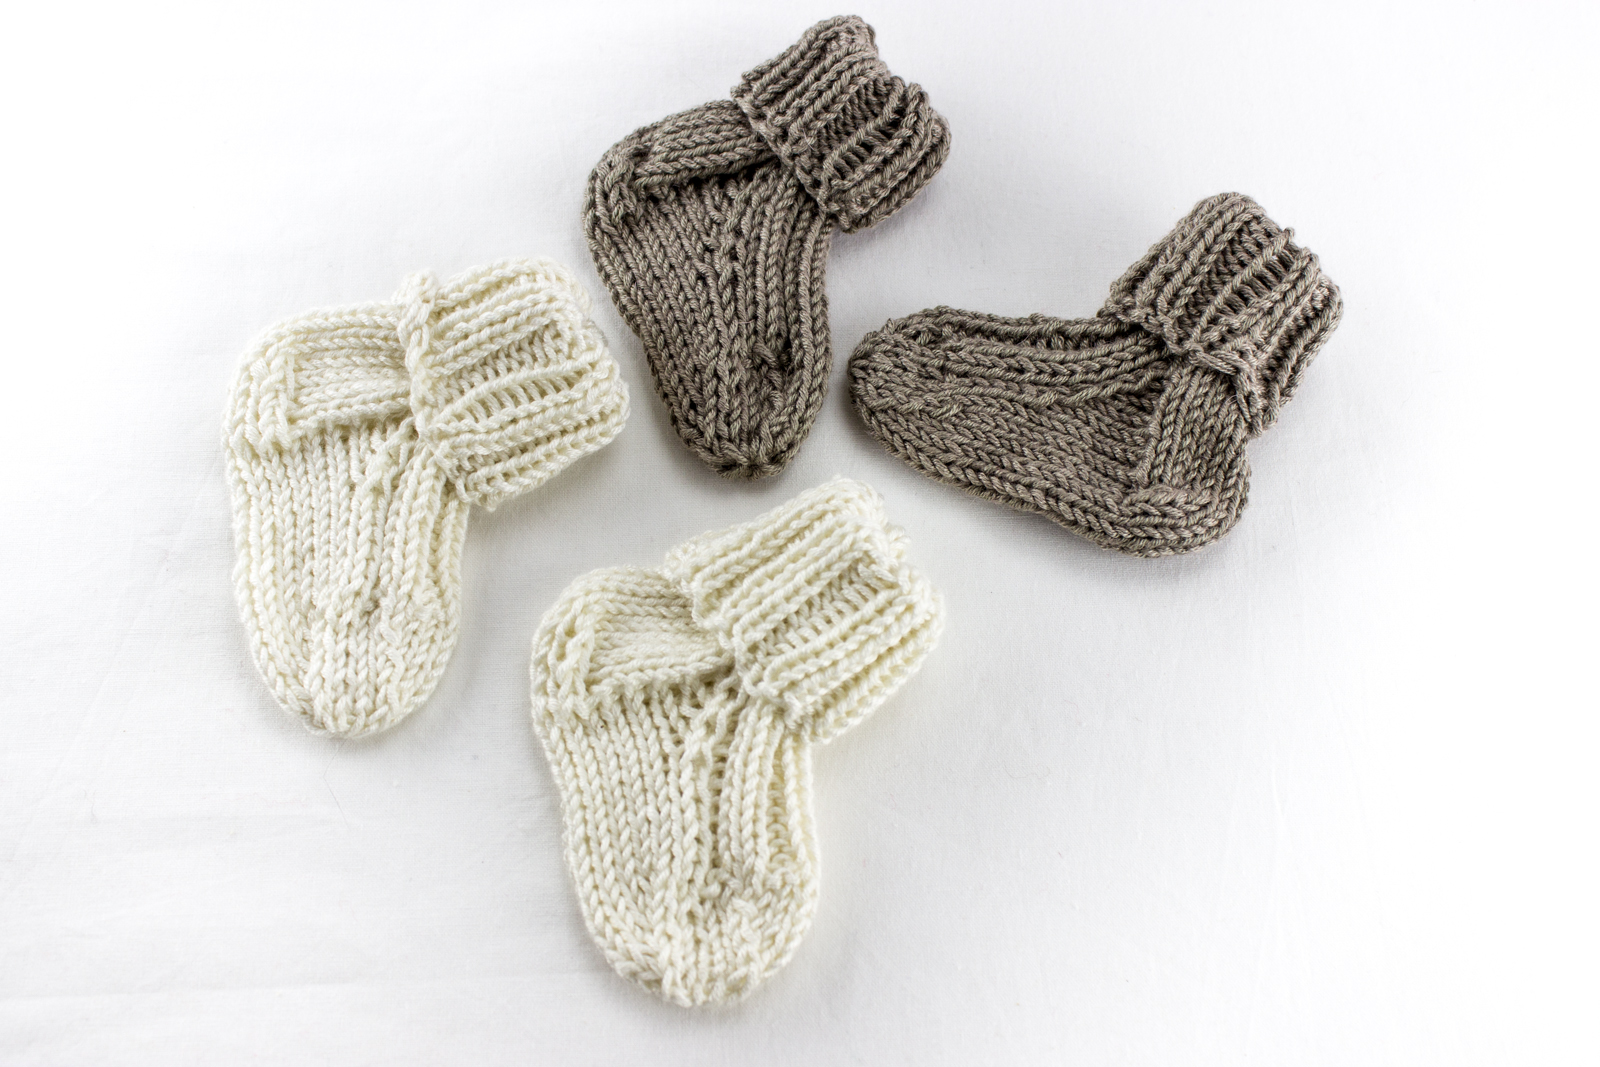 KNITTING PATTERN, Baby Socks ,Toddler Socks Pattern, Quick Baby Socks Knitting Pattern, Newborn Socks, Kids Sock Pattern